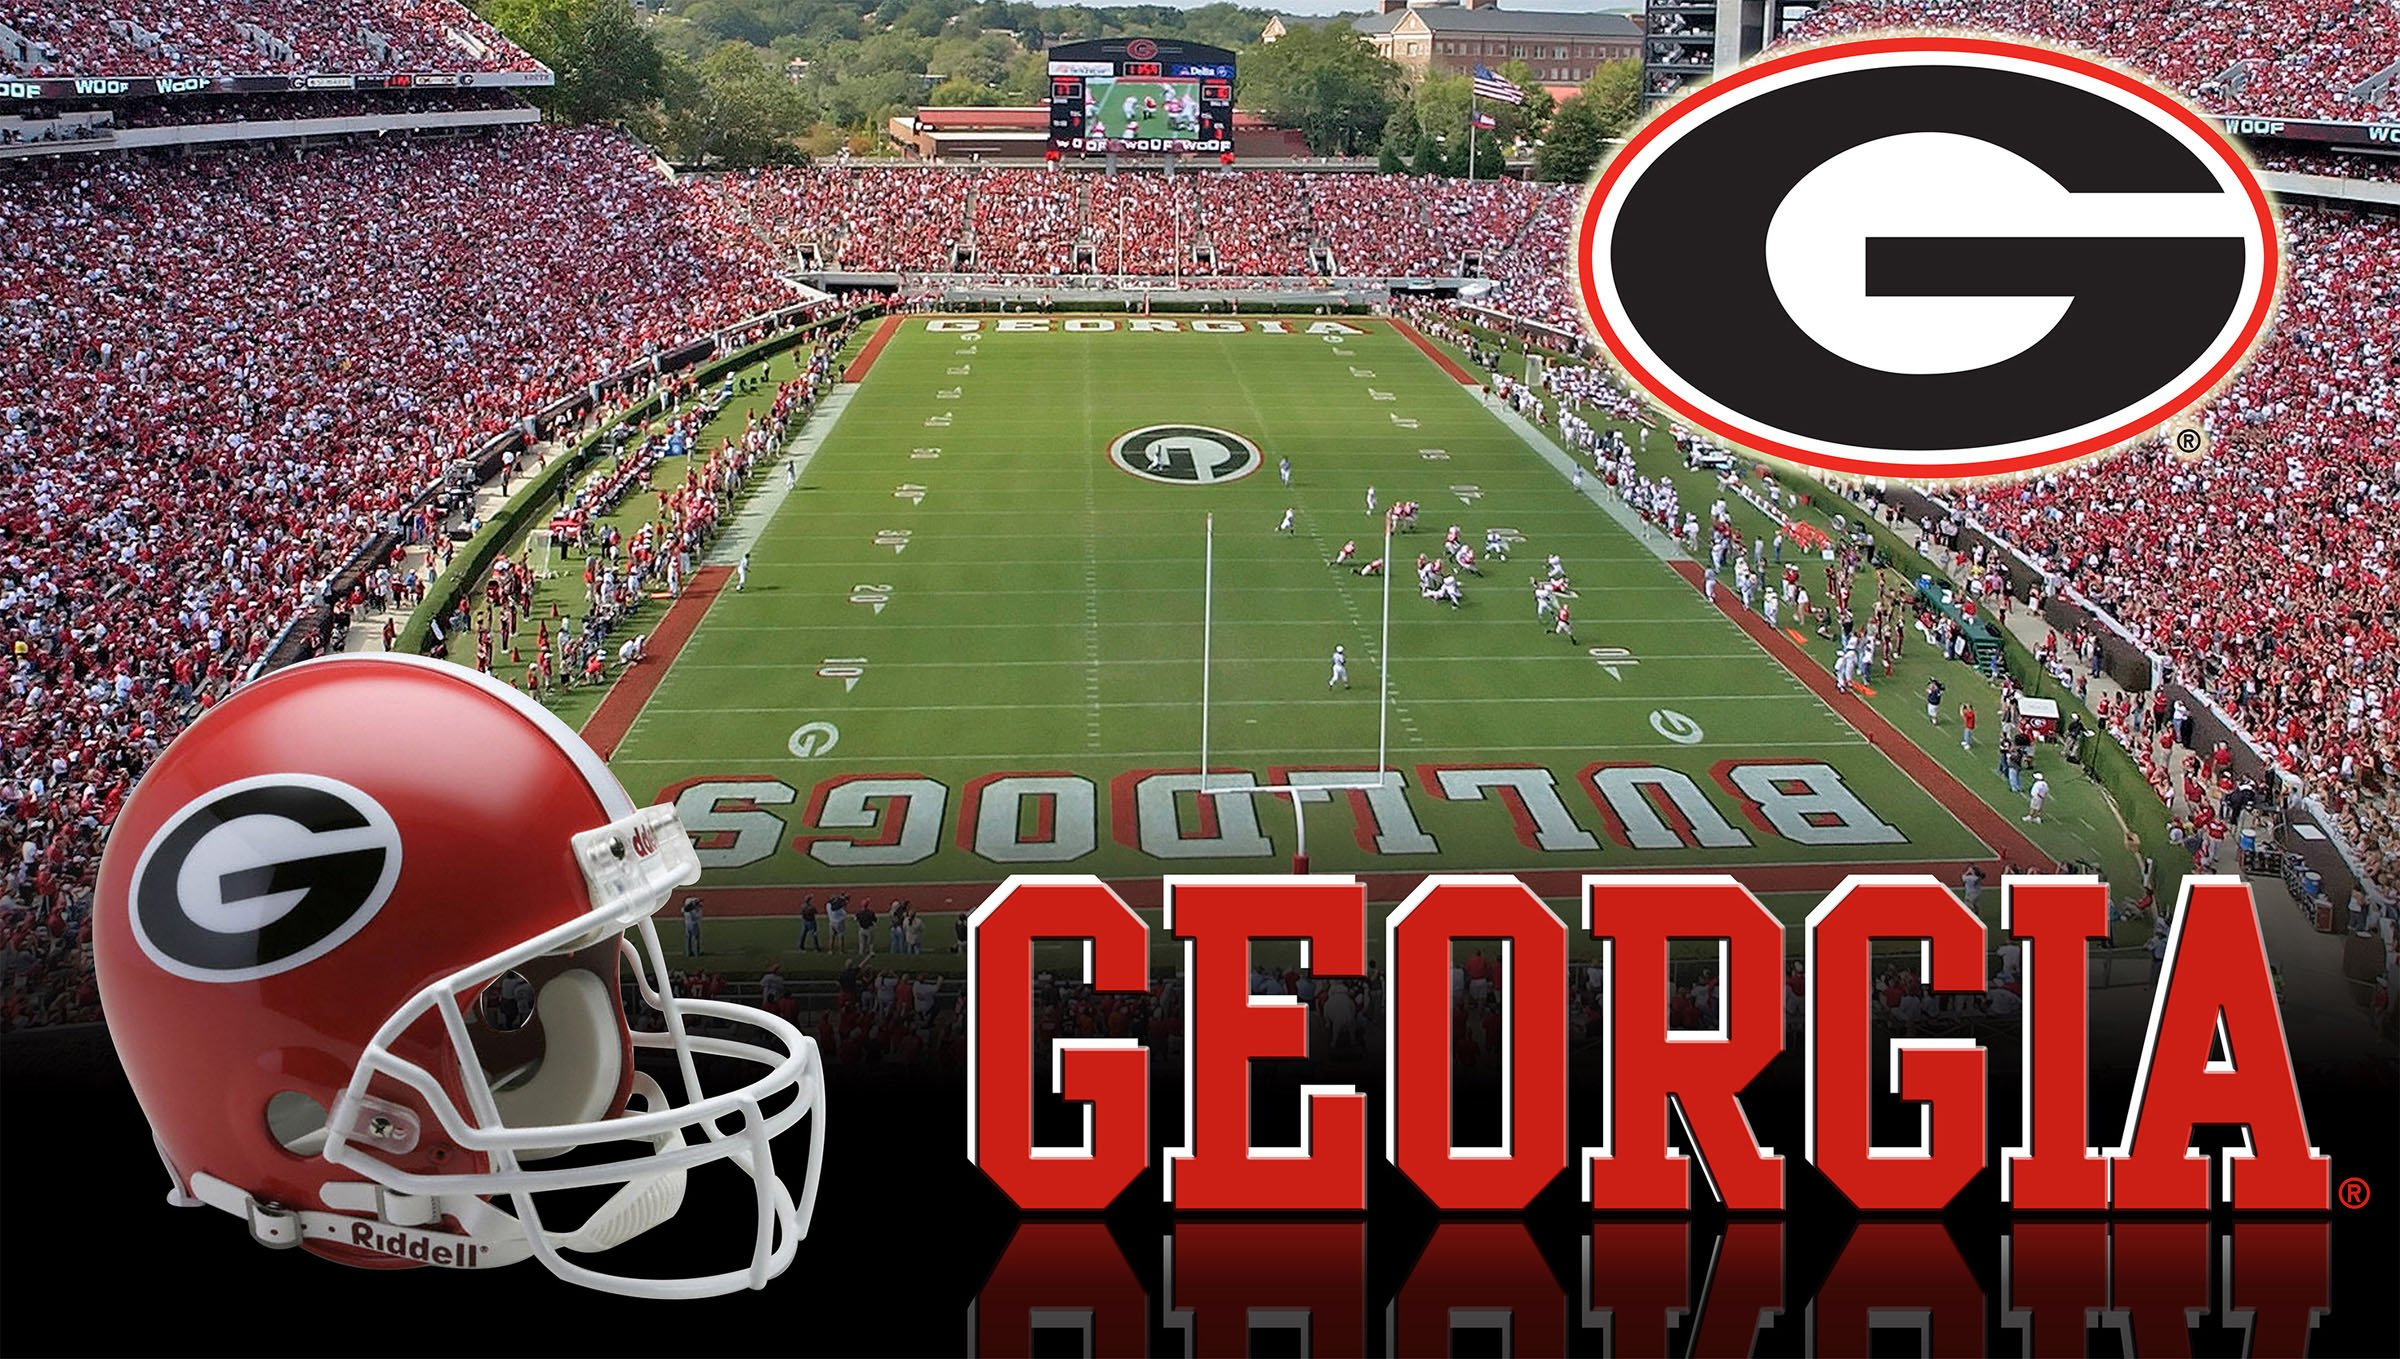 Wallpapers Georgia Bulldogs Logo 1349 X 800 55 Kb Jpeg HD Wallpapers 2400x1359